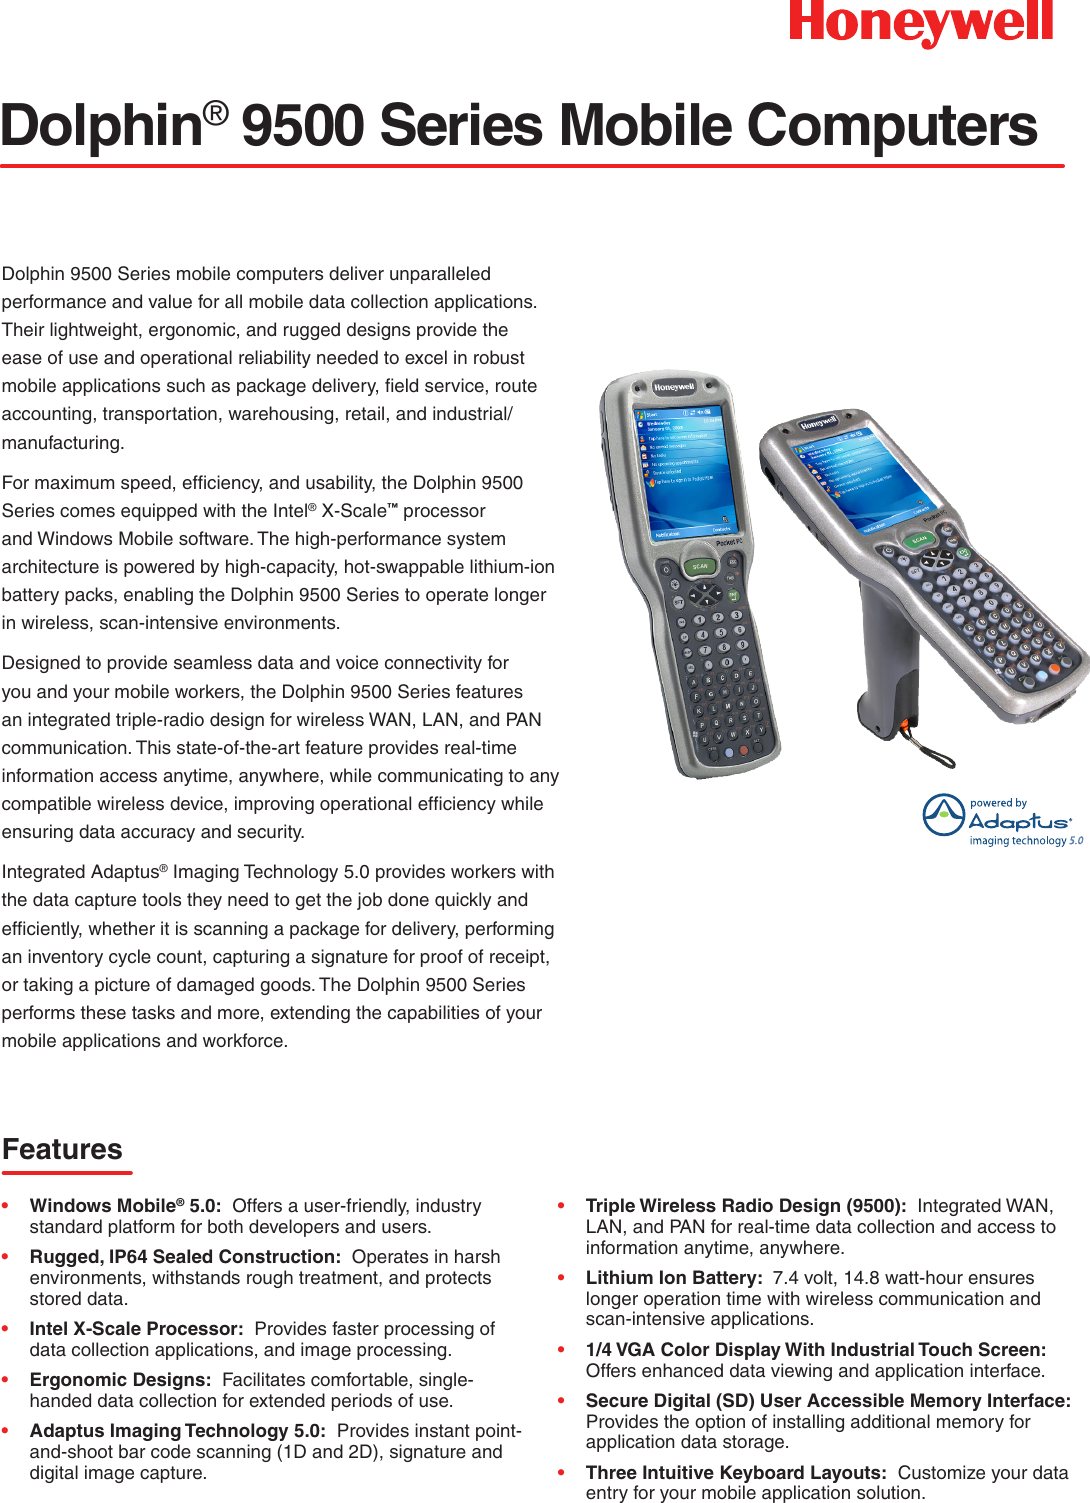 Dolphin 9500 Series Mobile Computer